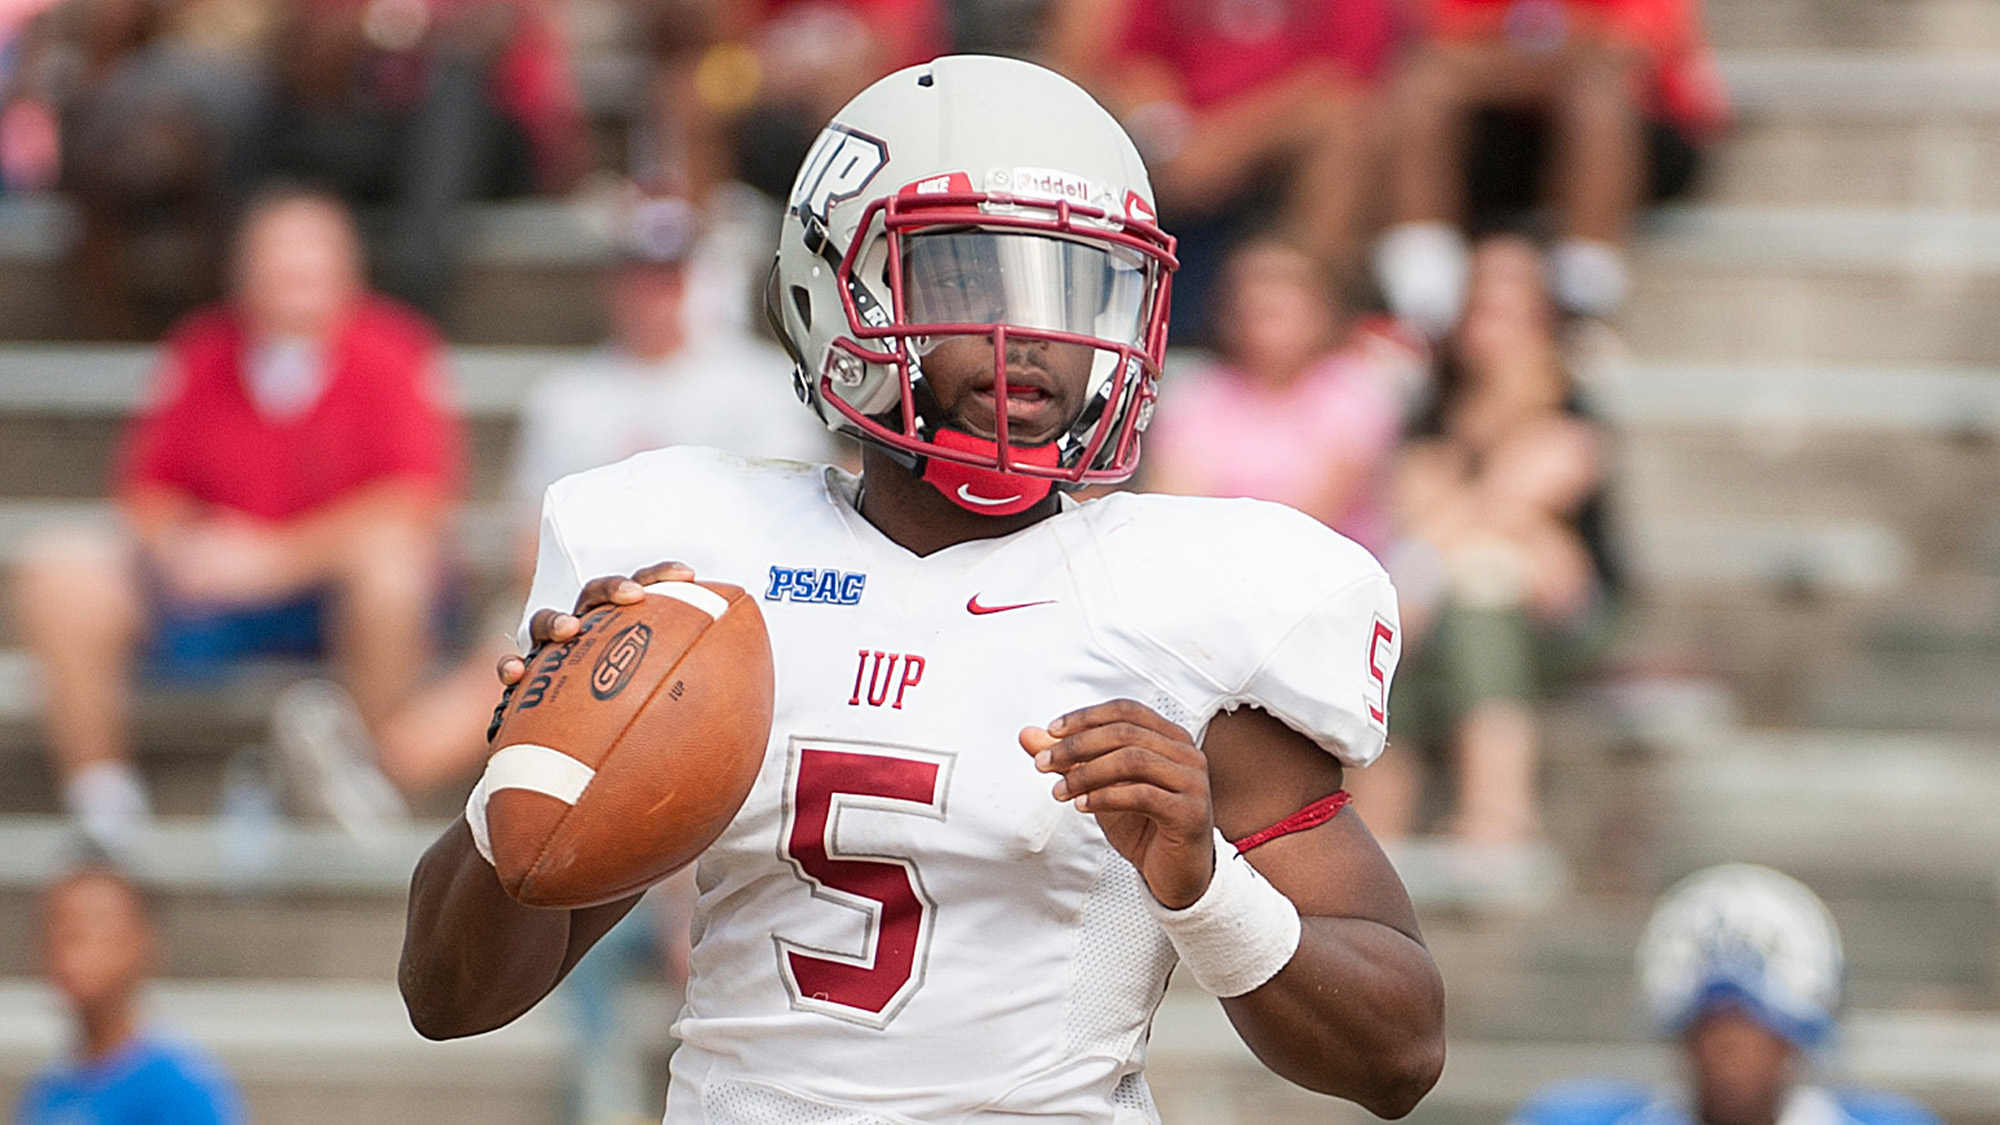 Indiana Gazette Crimson Hawks Qb Trying To Make Best Of Situation